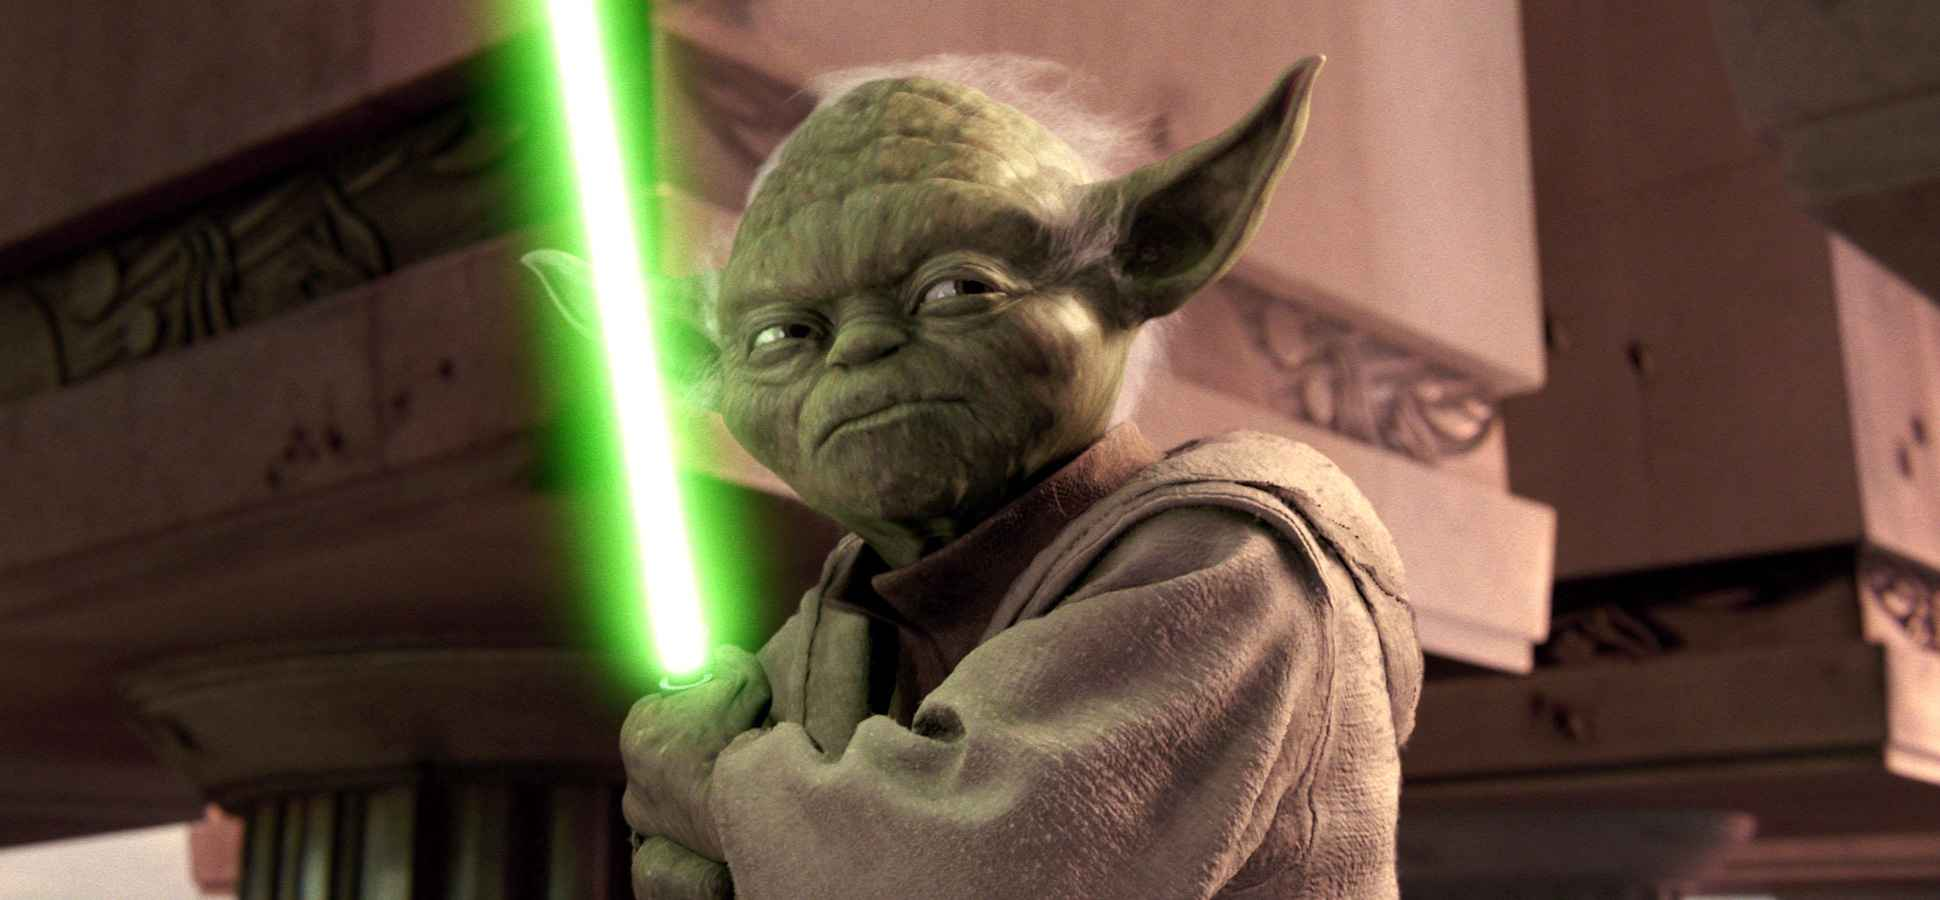 Great Speakers Are Like Yoda, Not Luke Skywalker